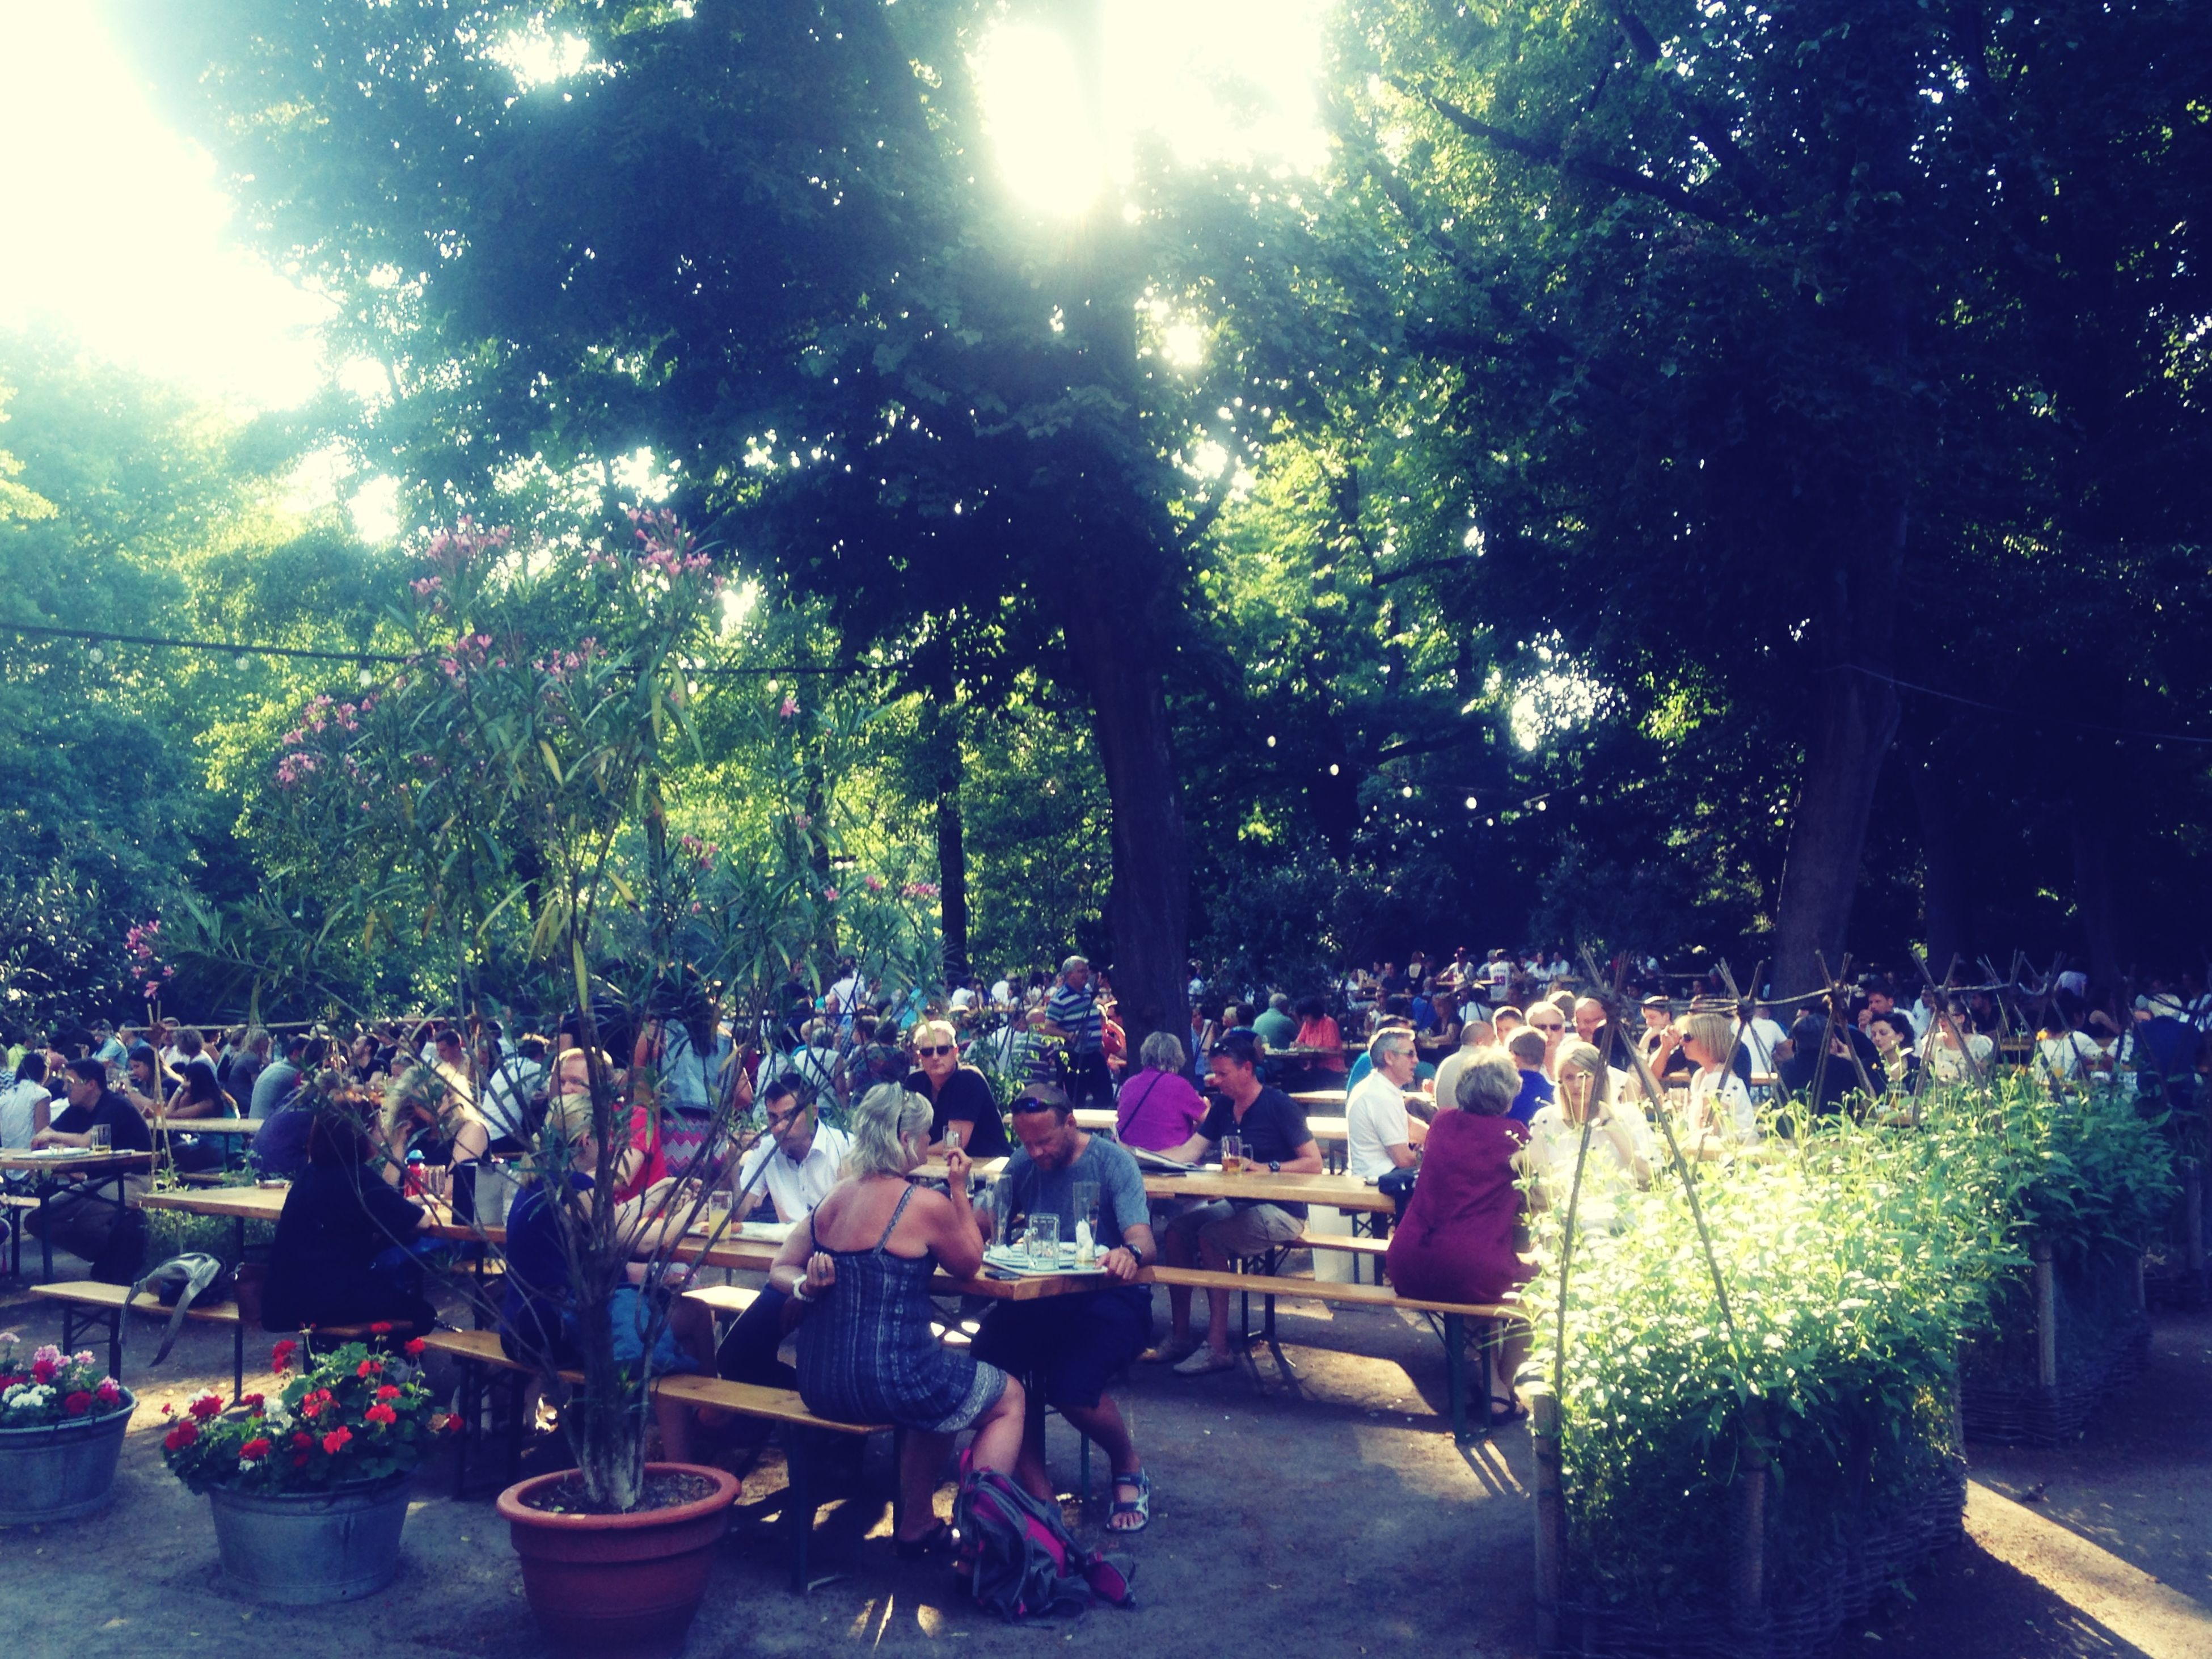 tree, men, person, growth, lifestyles, green color, sunlight, leisure activity, potted plant, freshness, chair, plant, park - man made space, day, large group of people, outdoors, nature, food and drink, table